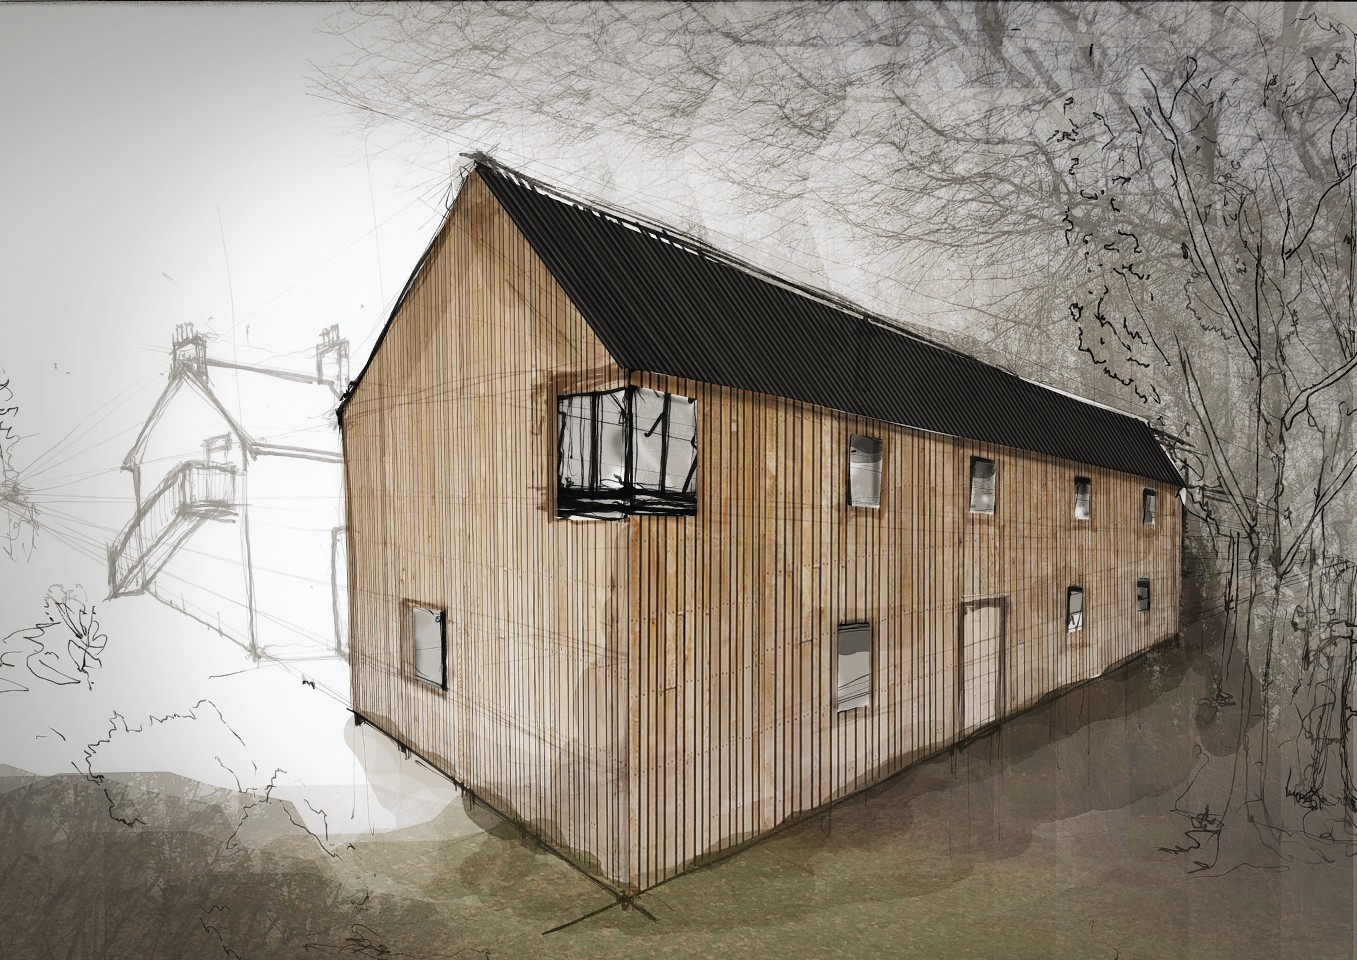 A rough artistic impression of the extension at the Glencoe Centre